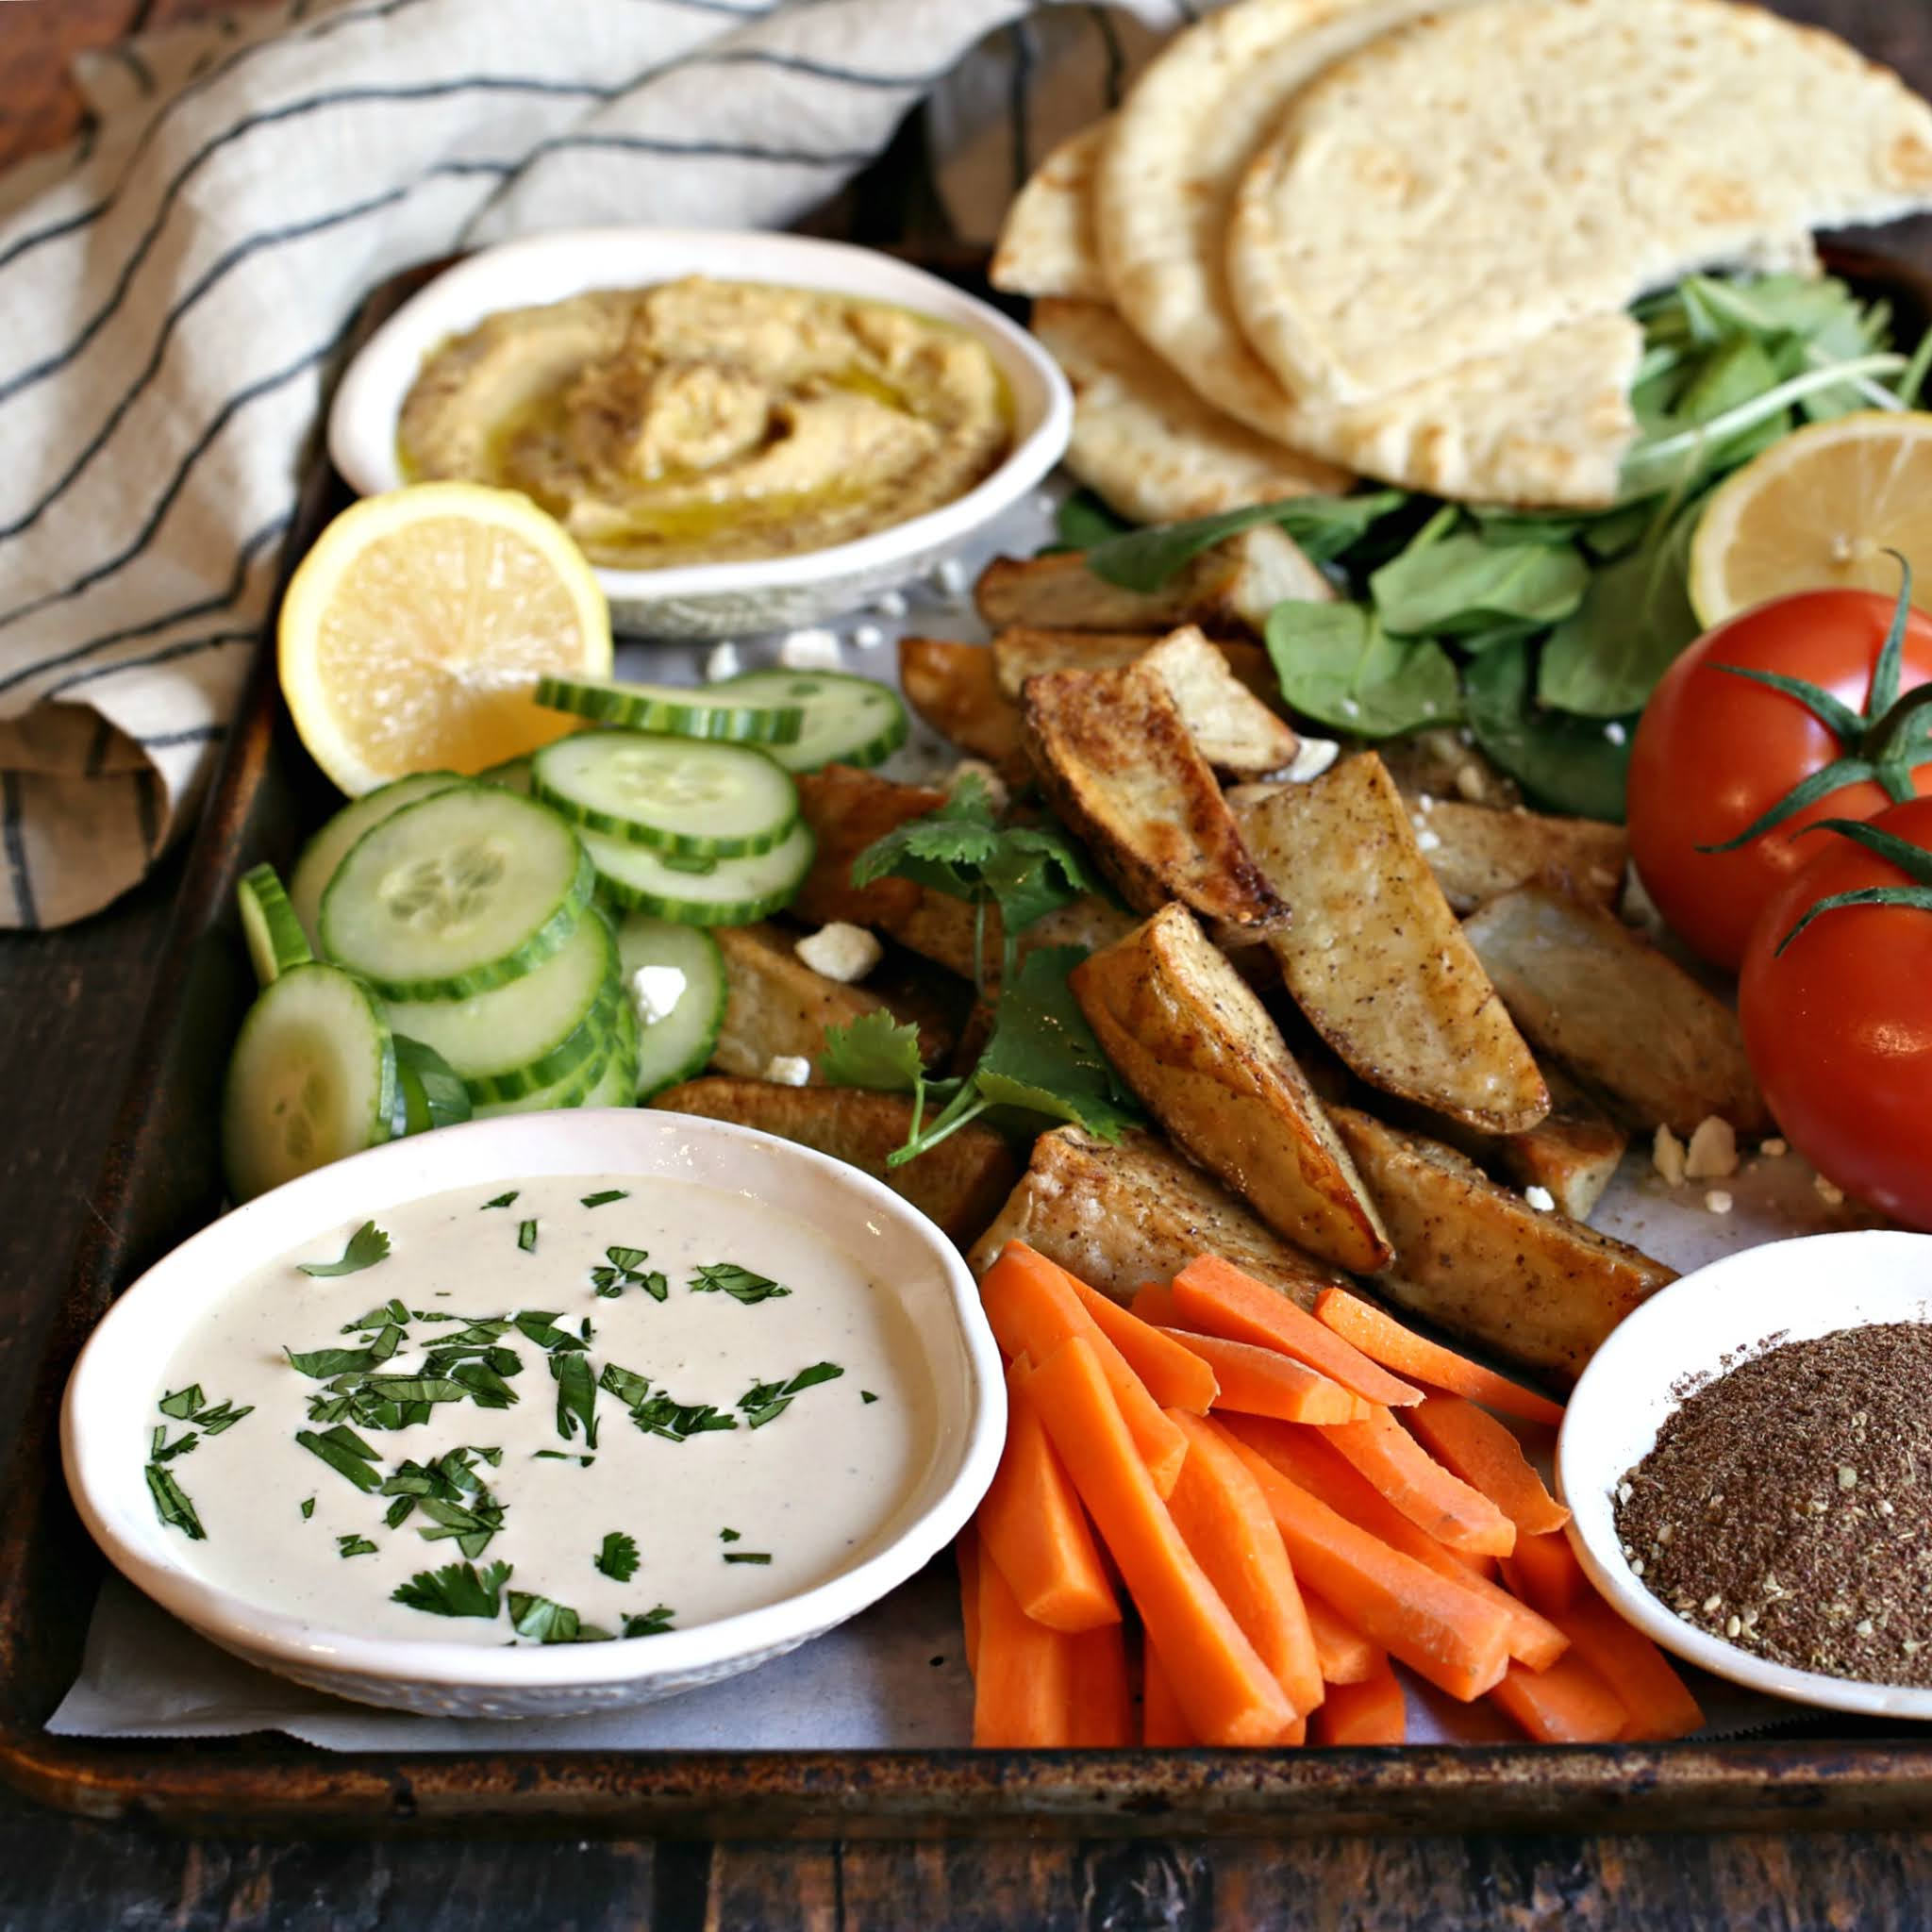 Recipe for a Middle Eastern inspired appetizer platter with za'atar roasted potatoes, hummus and tahini dips.